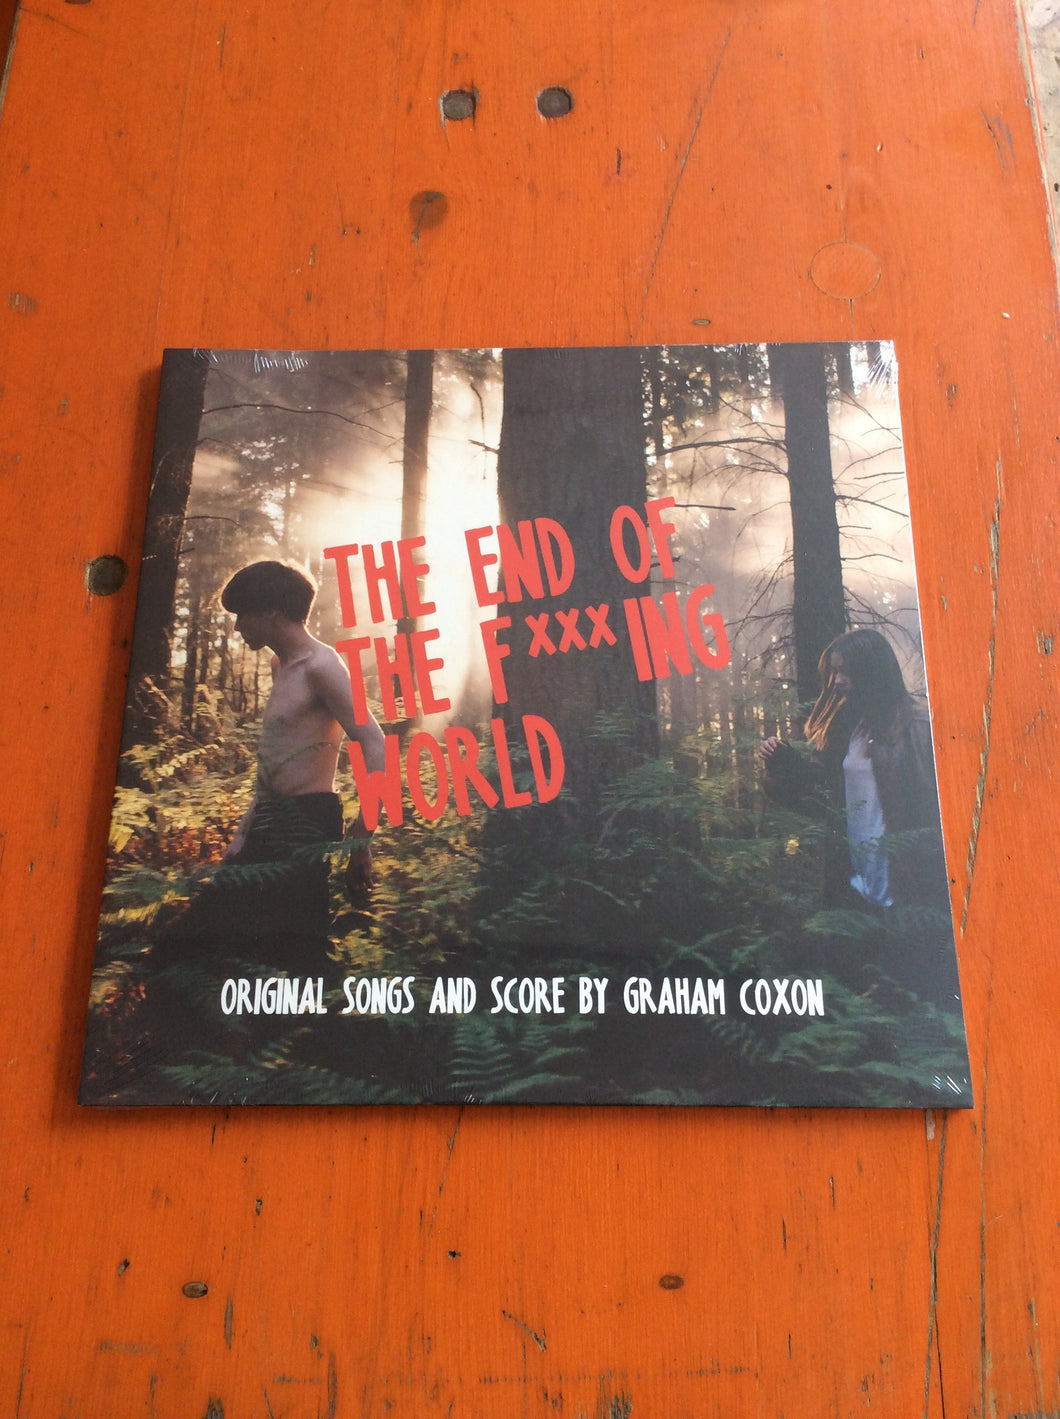 The End Of The Fucking World - Soundtrack Score by Graham Coxon